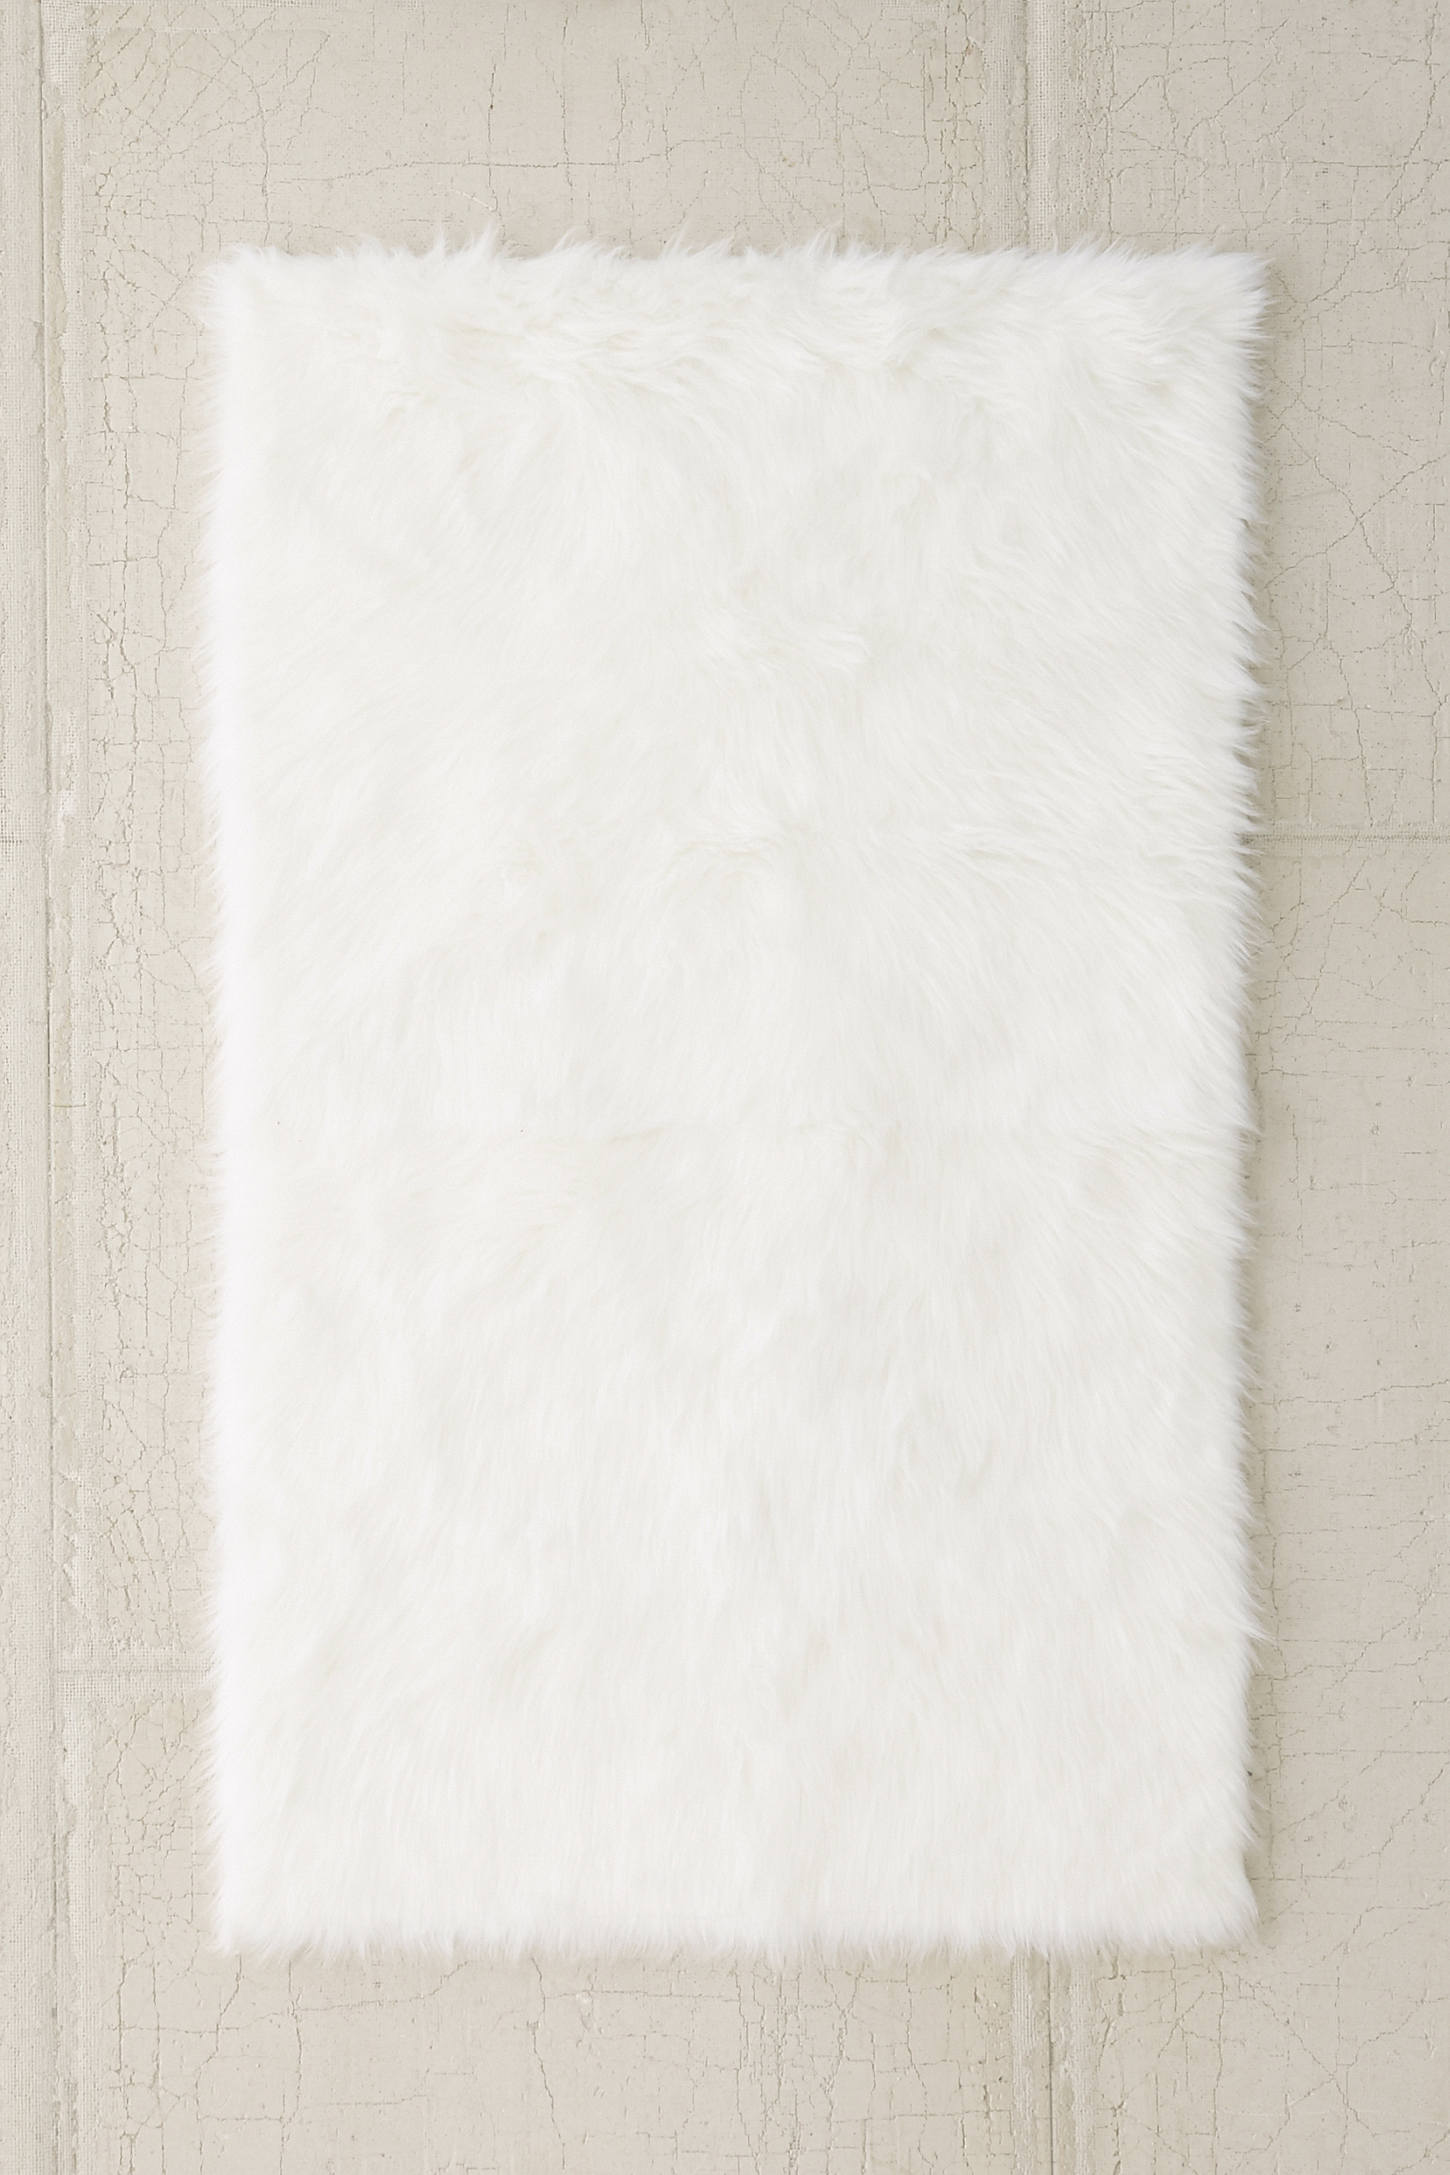 Slide View: 1: Faux Sheep Skin Rug